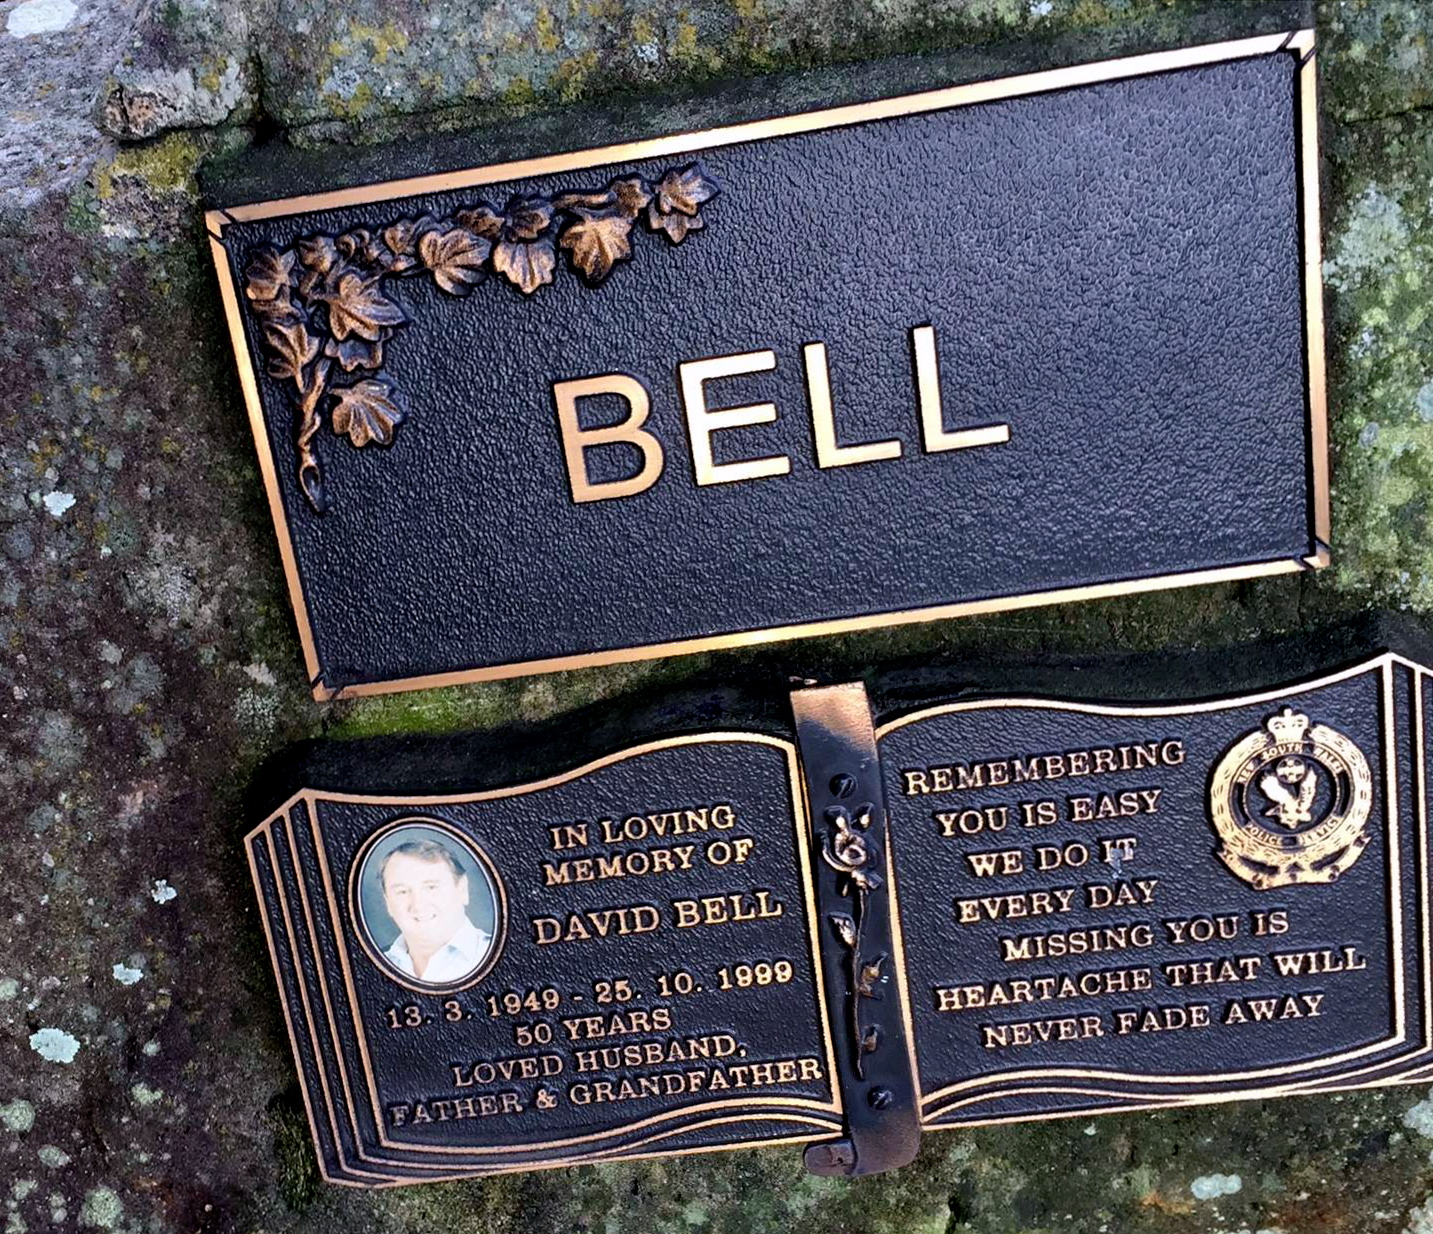 Memorial stone for David Bell at Beresfield Crematorium